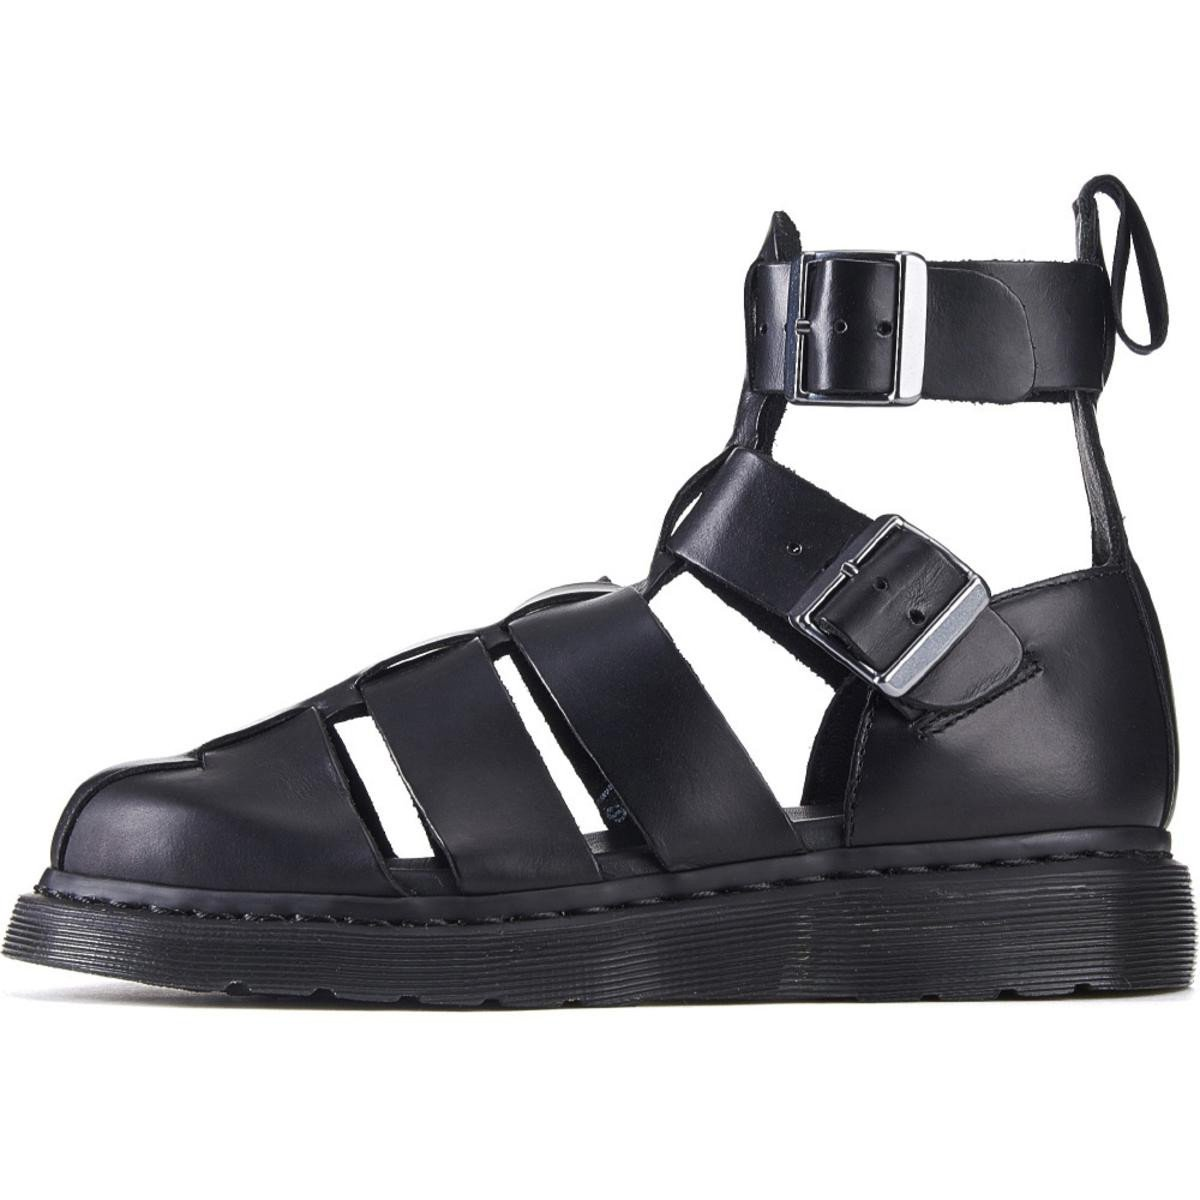 Dr. Martens for Women: Geraldo Black Sandals